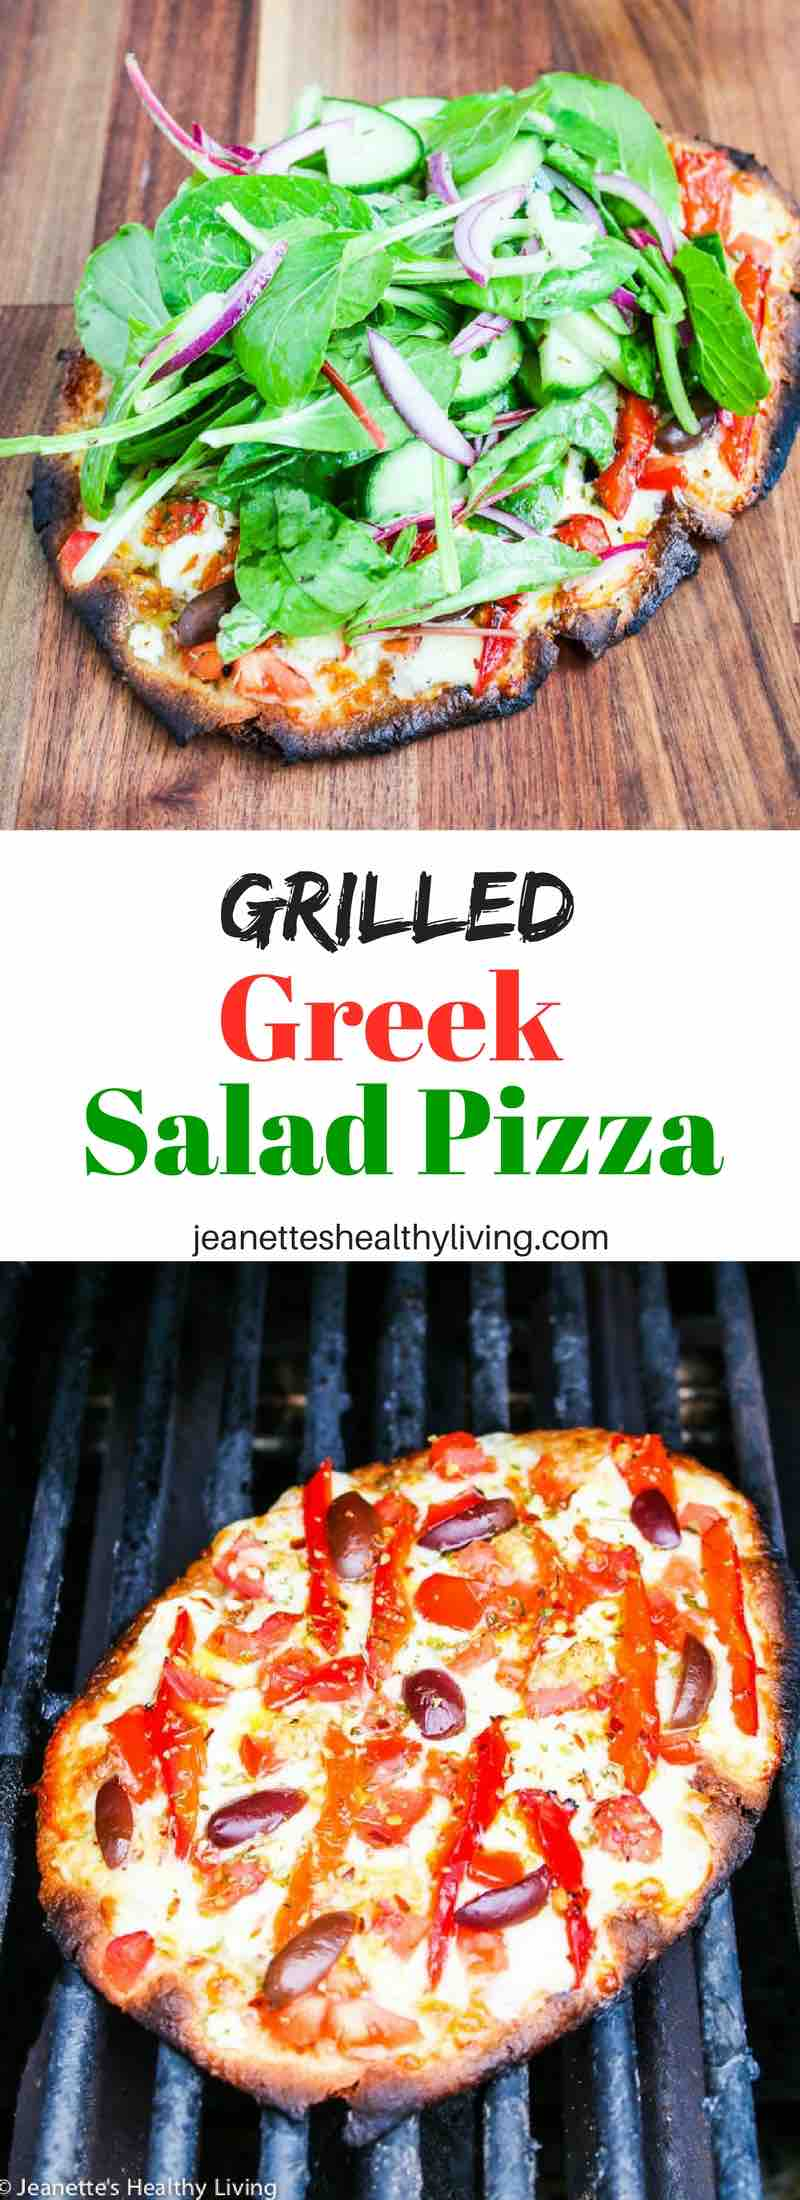 Grilled Greek Salad Pizza - Jeanette's Healthy Living